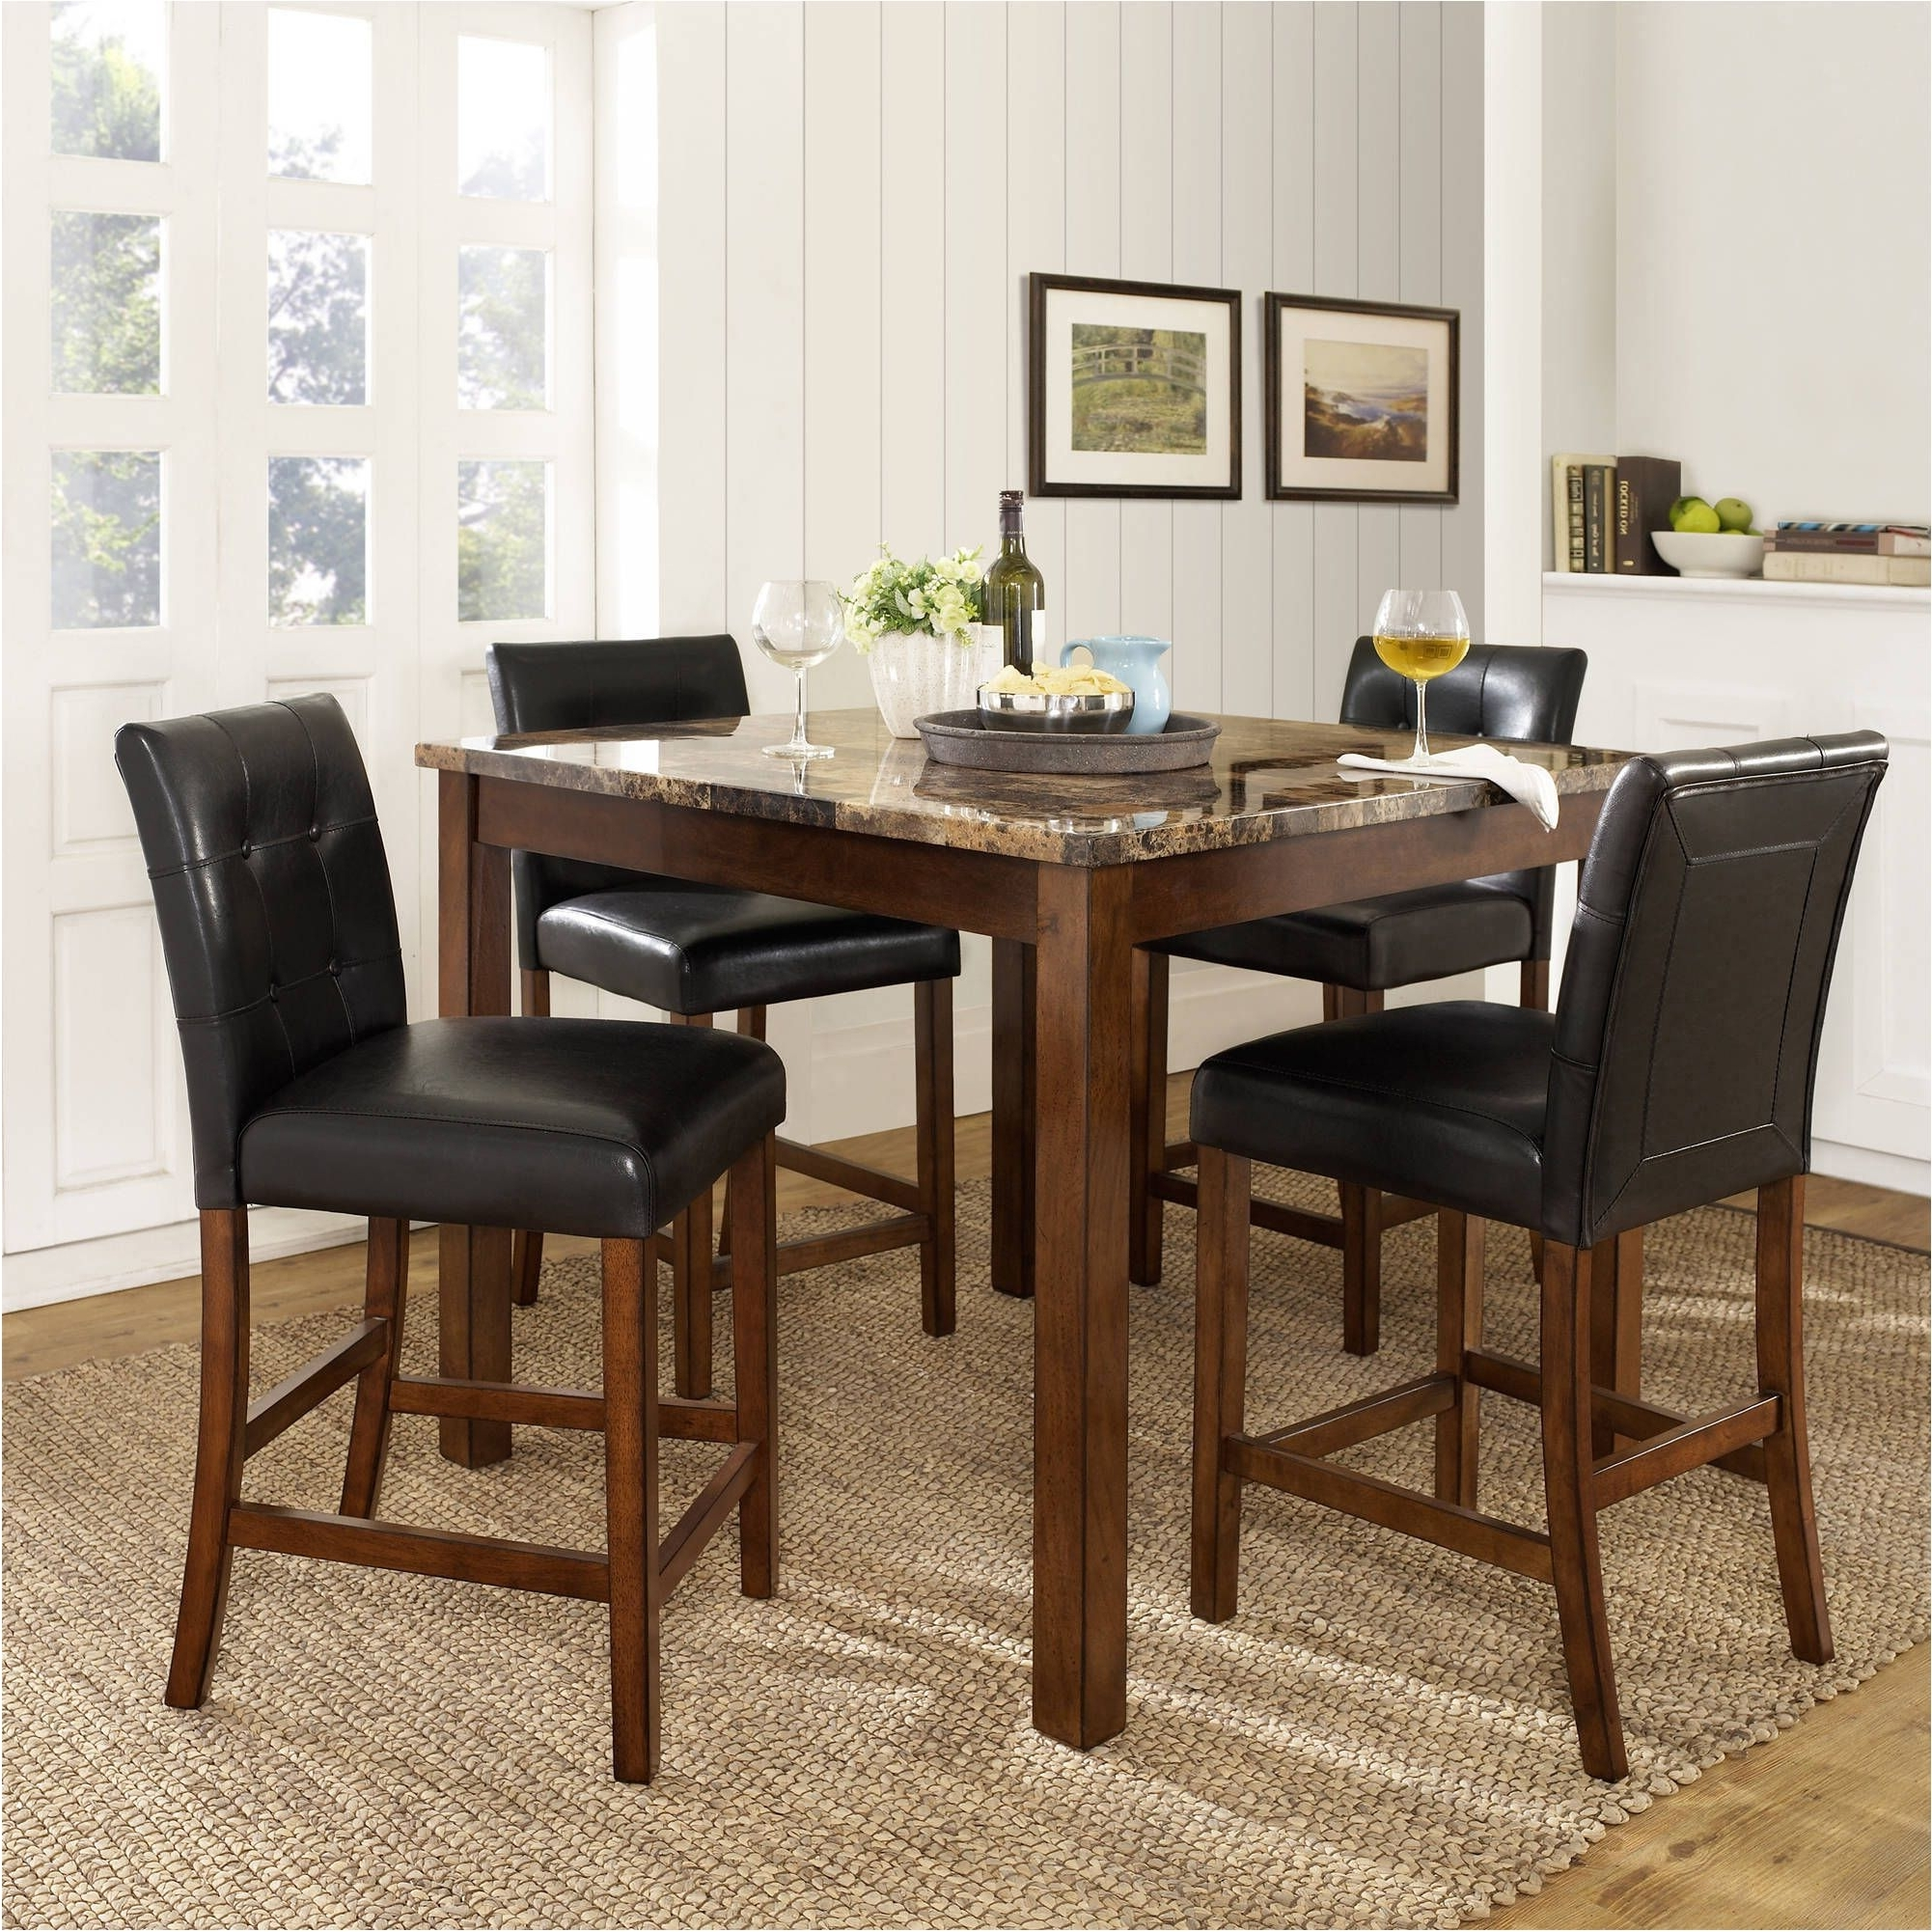 Cheap Dining Sets Throughout Newest Nice Surprising Discount Dining Sets 12 Unique Ideas Cheap Table And (Gallery 1 of 25)